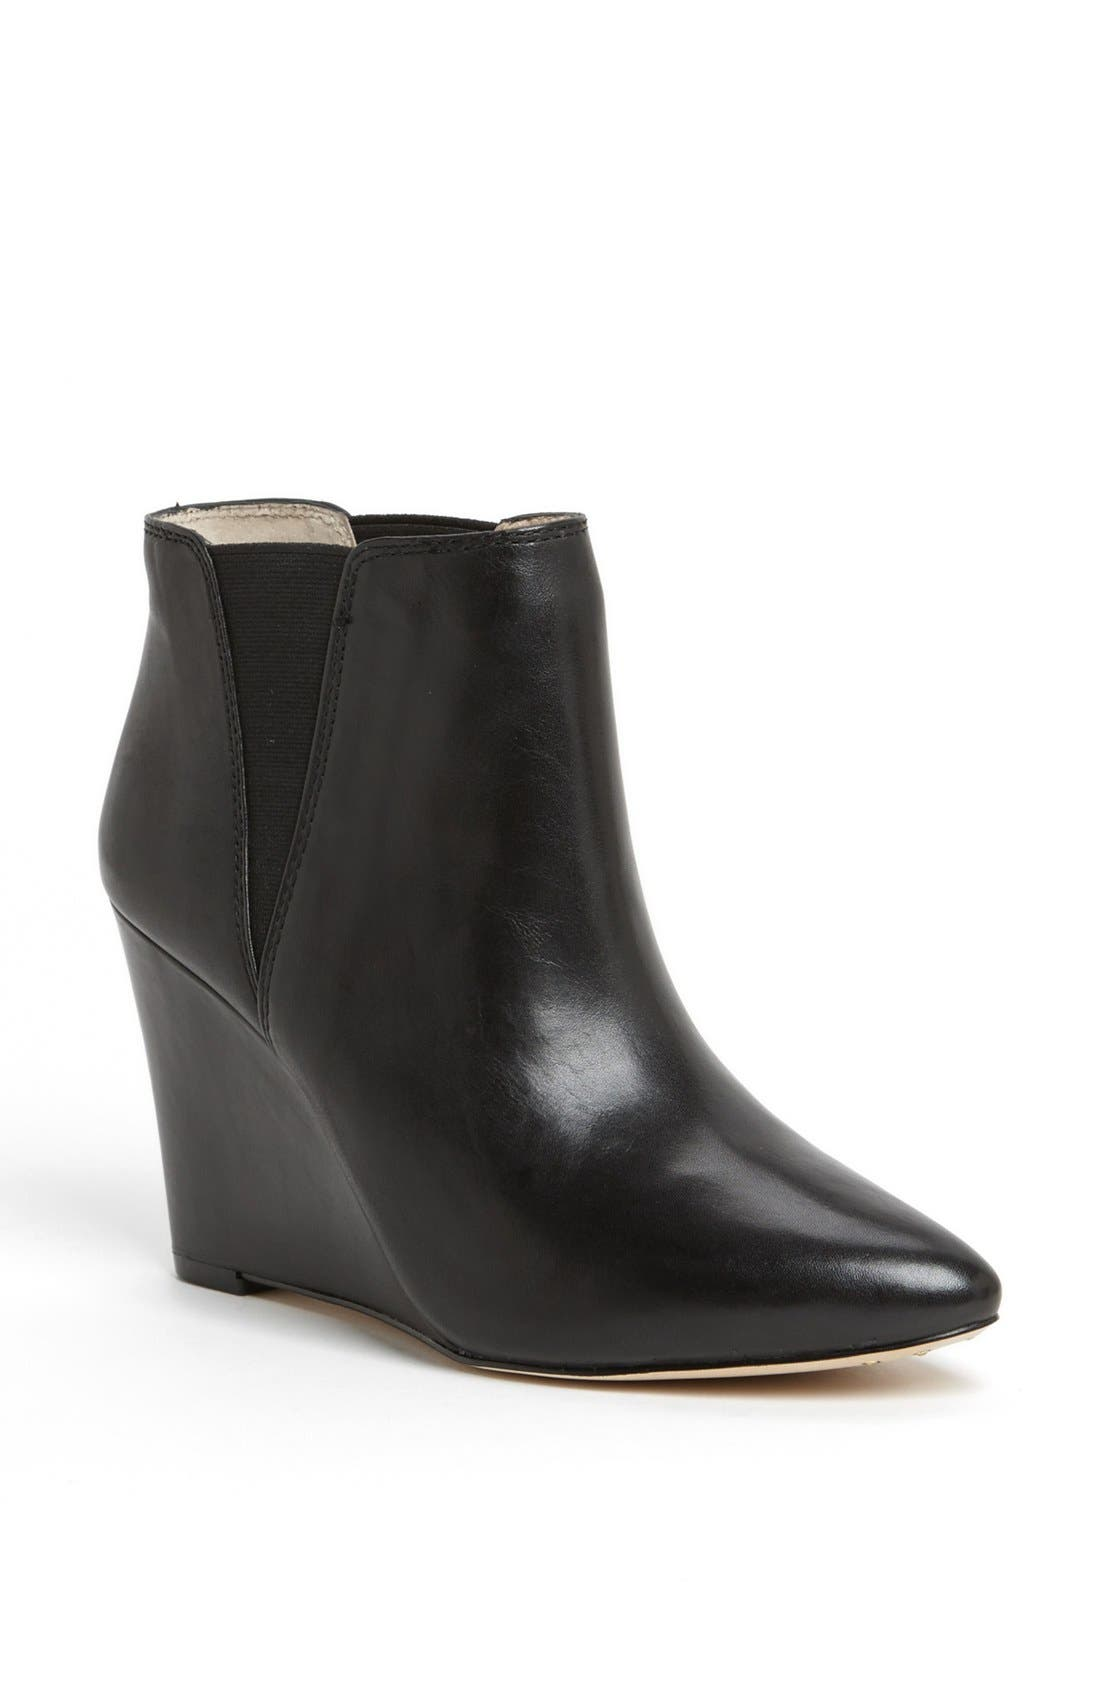 Alternate Image 1 Selected - Louise et Cie 'Wikket' Bootie (Nordstrom Exclusive)